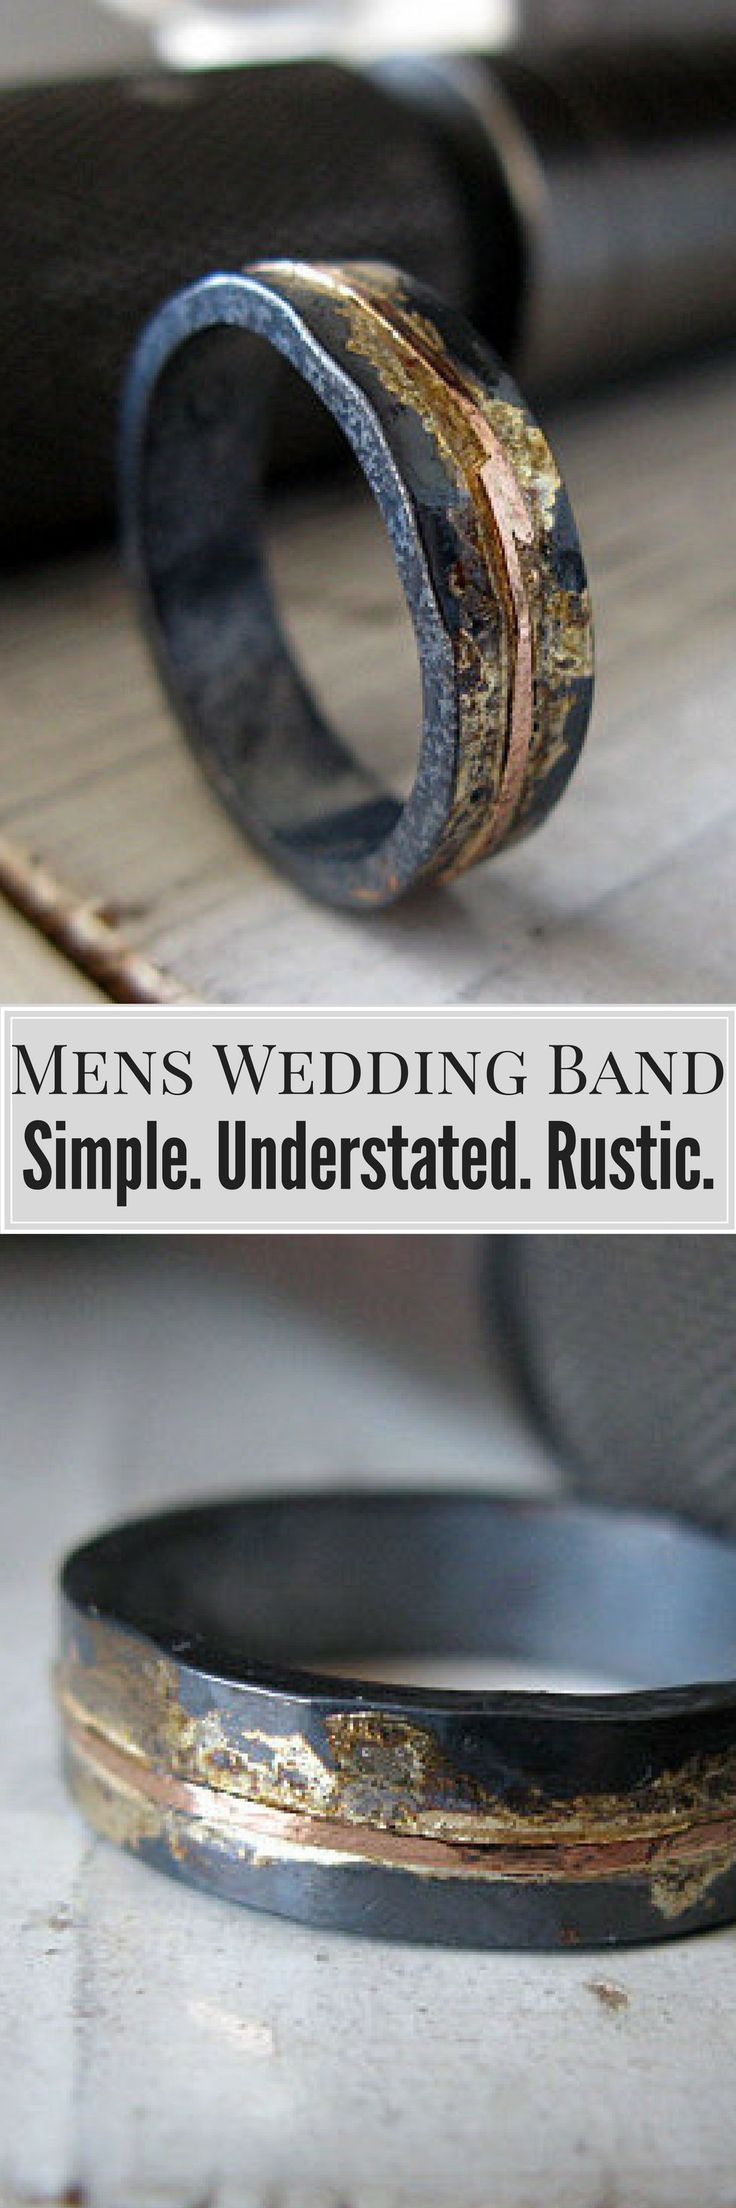 This design is an edgy wedding band or chic fashion ring - for man or woman!   Mens Wedding Band Mens  Wedding Ring Oxidized Ring Black Gold Ring Rustic Ring Unique Wedding  Band Viking Wedding Ring Mens Wedding Bands Wedding Ideas #weddingrings #ad #weddingideas #menweddingrings #goldweddingring #DiamondWeddingRingsforMen